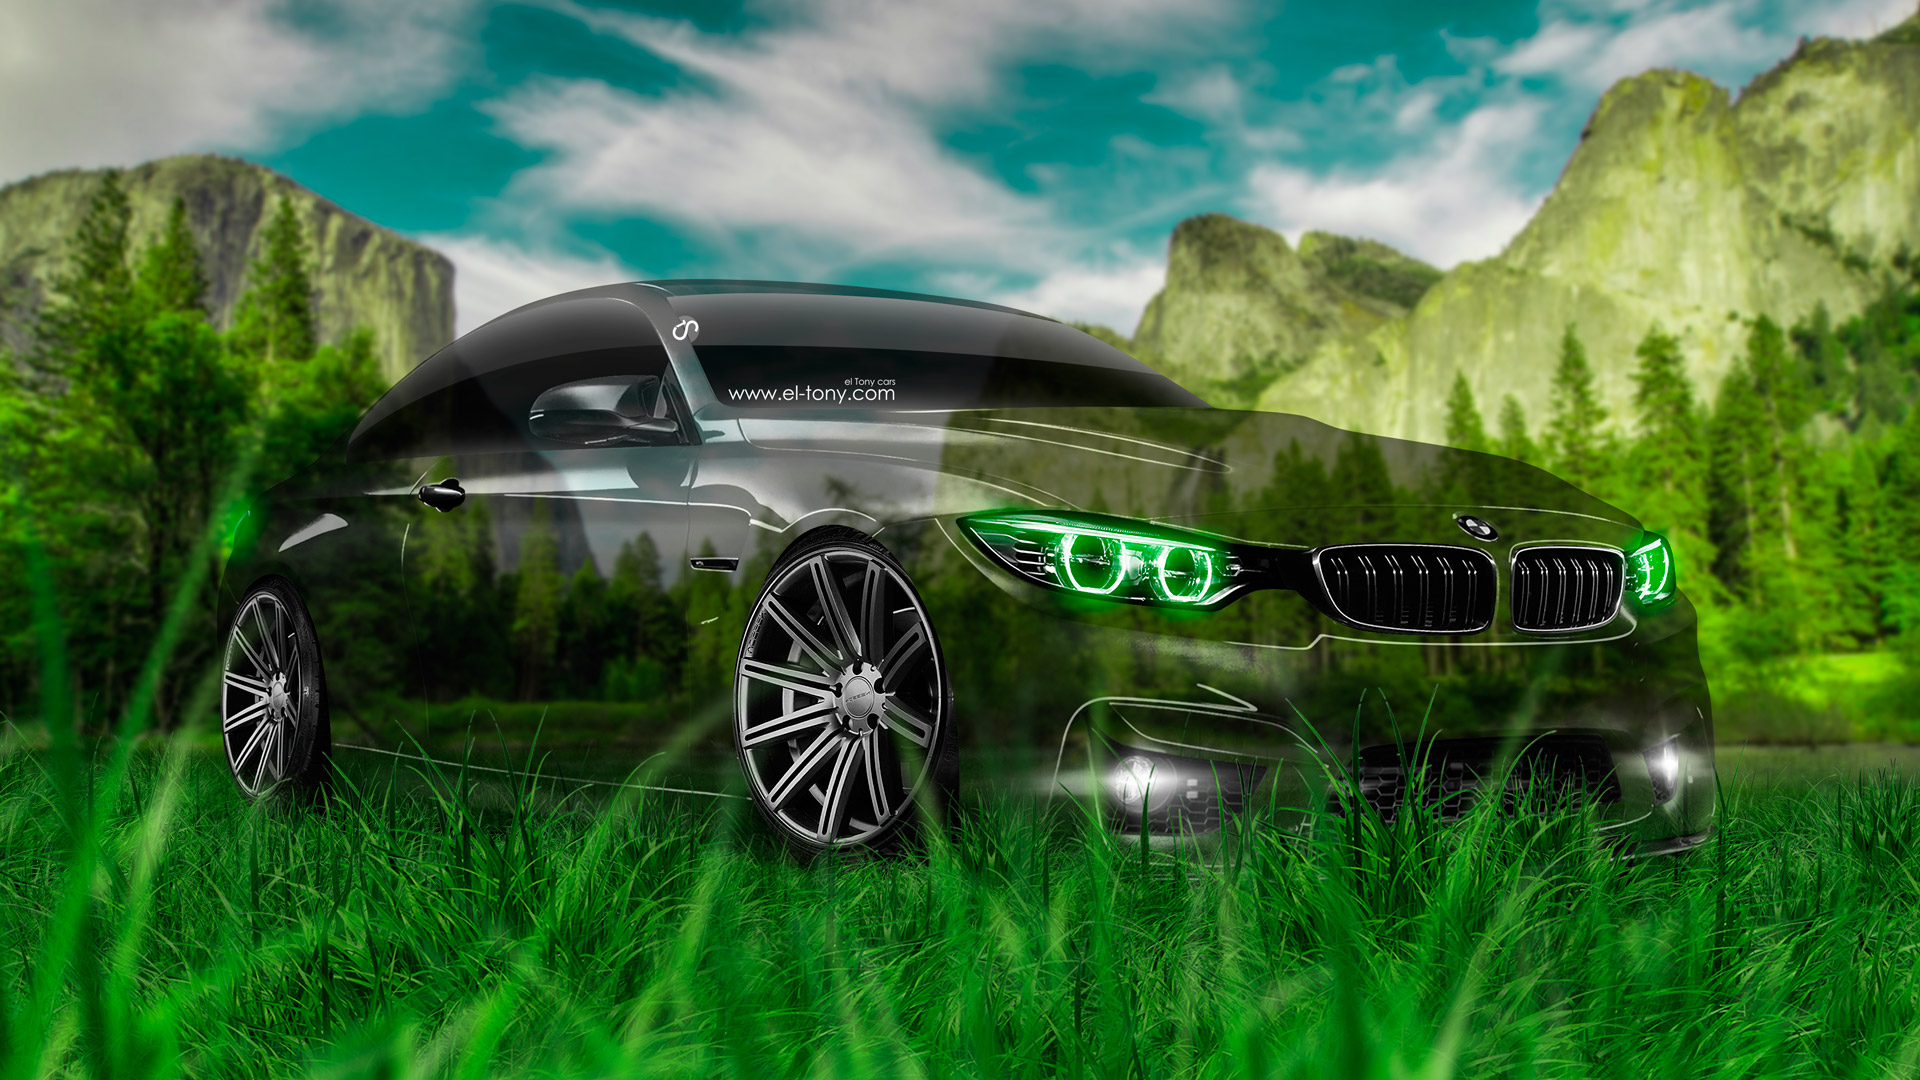 ... BMW M4 Crystal Nature Car 2014 Green Neon